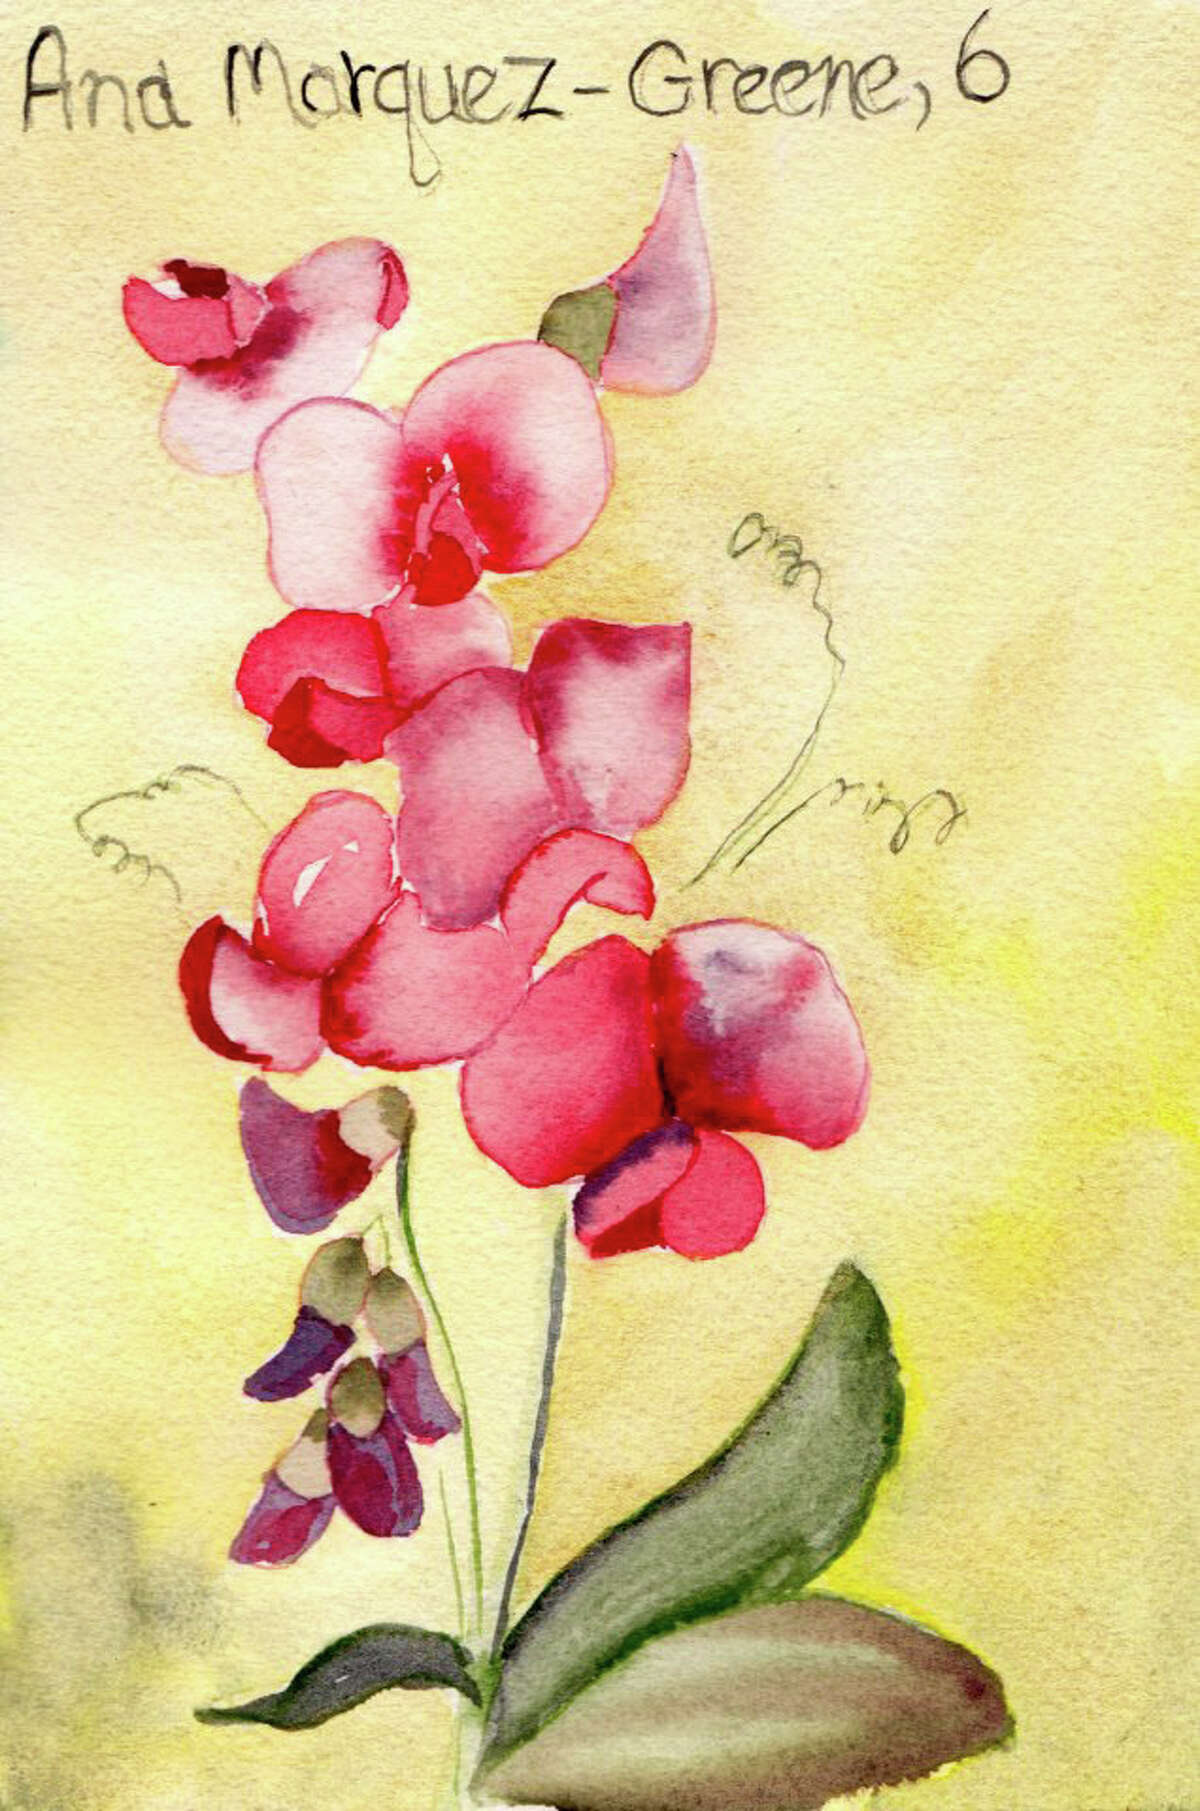 Painting for Sandy Hook victim Ana Marquez-Greene, age 6, by Pamela Hollinde, a substitute art teacher at Greenville Elementary. Hollinde created 26 watercolor flower paintings as a way to memorialize the victims of Sandy Hook in Newtown, Conn. She sent the paints down to Newtown this this week. (Pamela Hollinde)